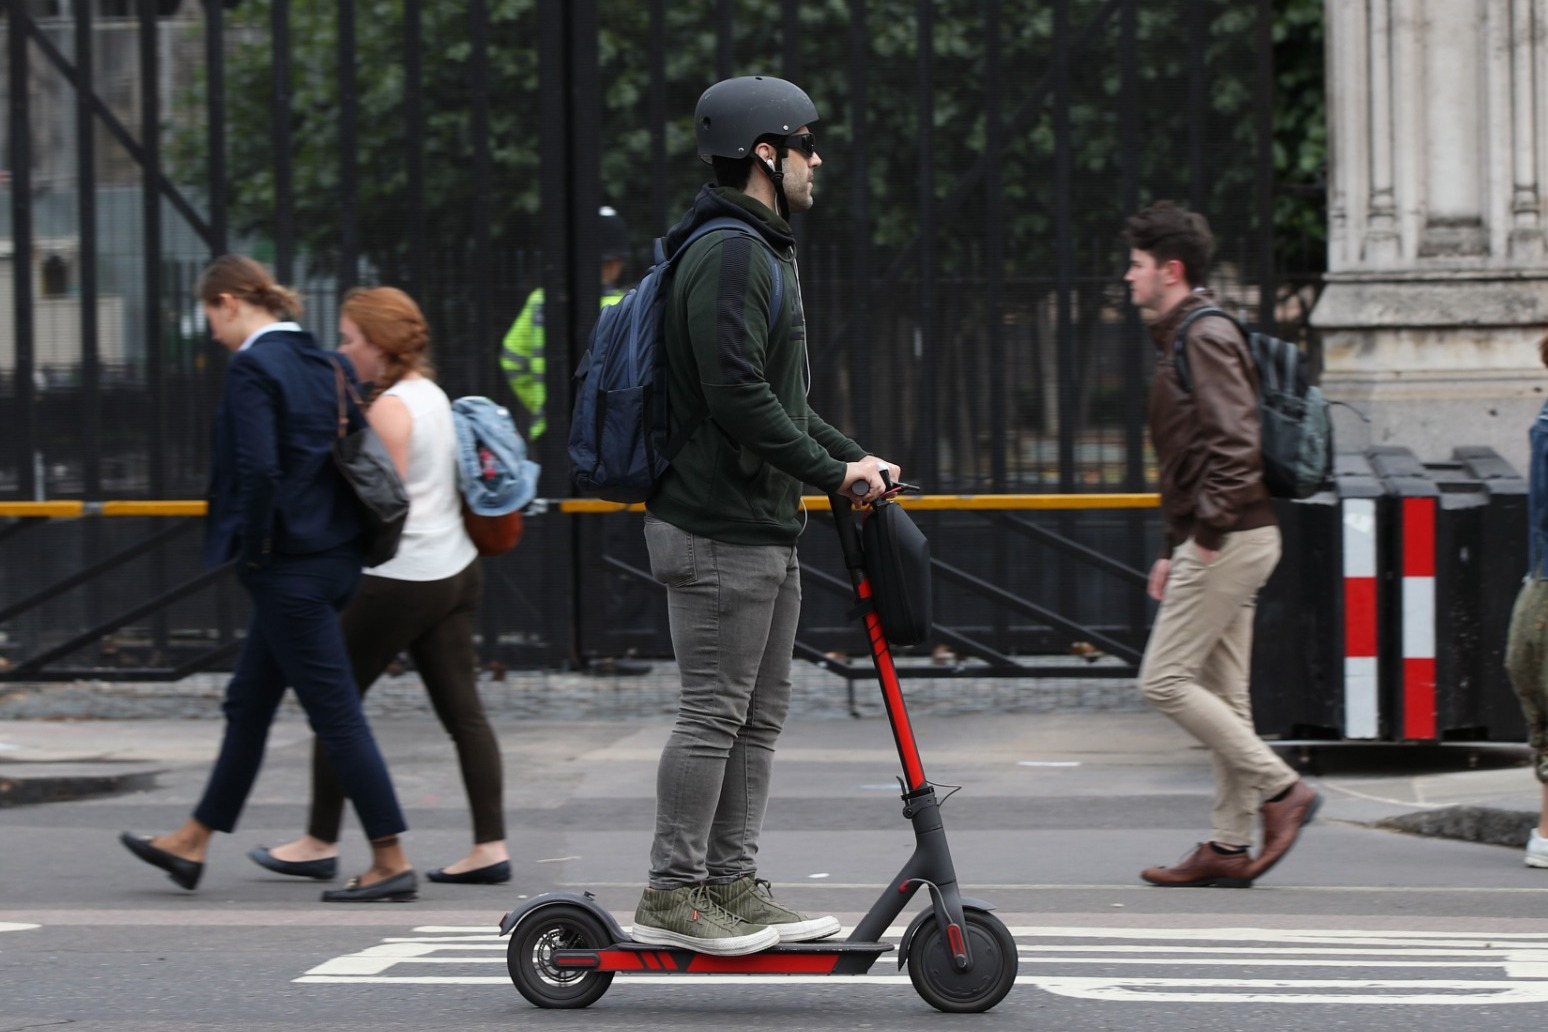 Electric scooters can make cities \